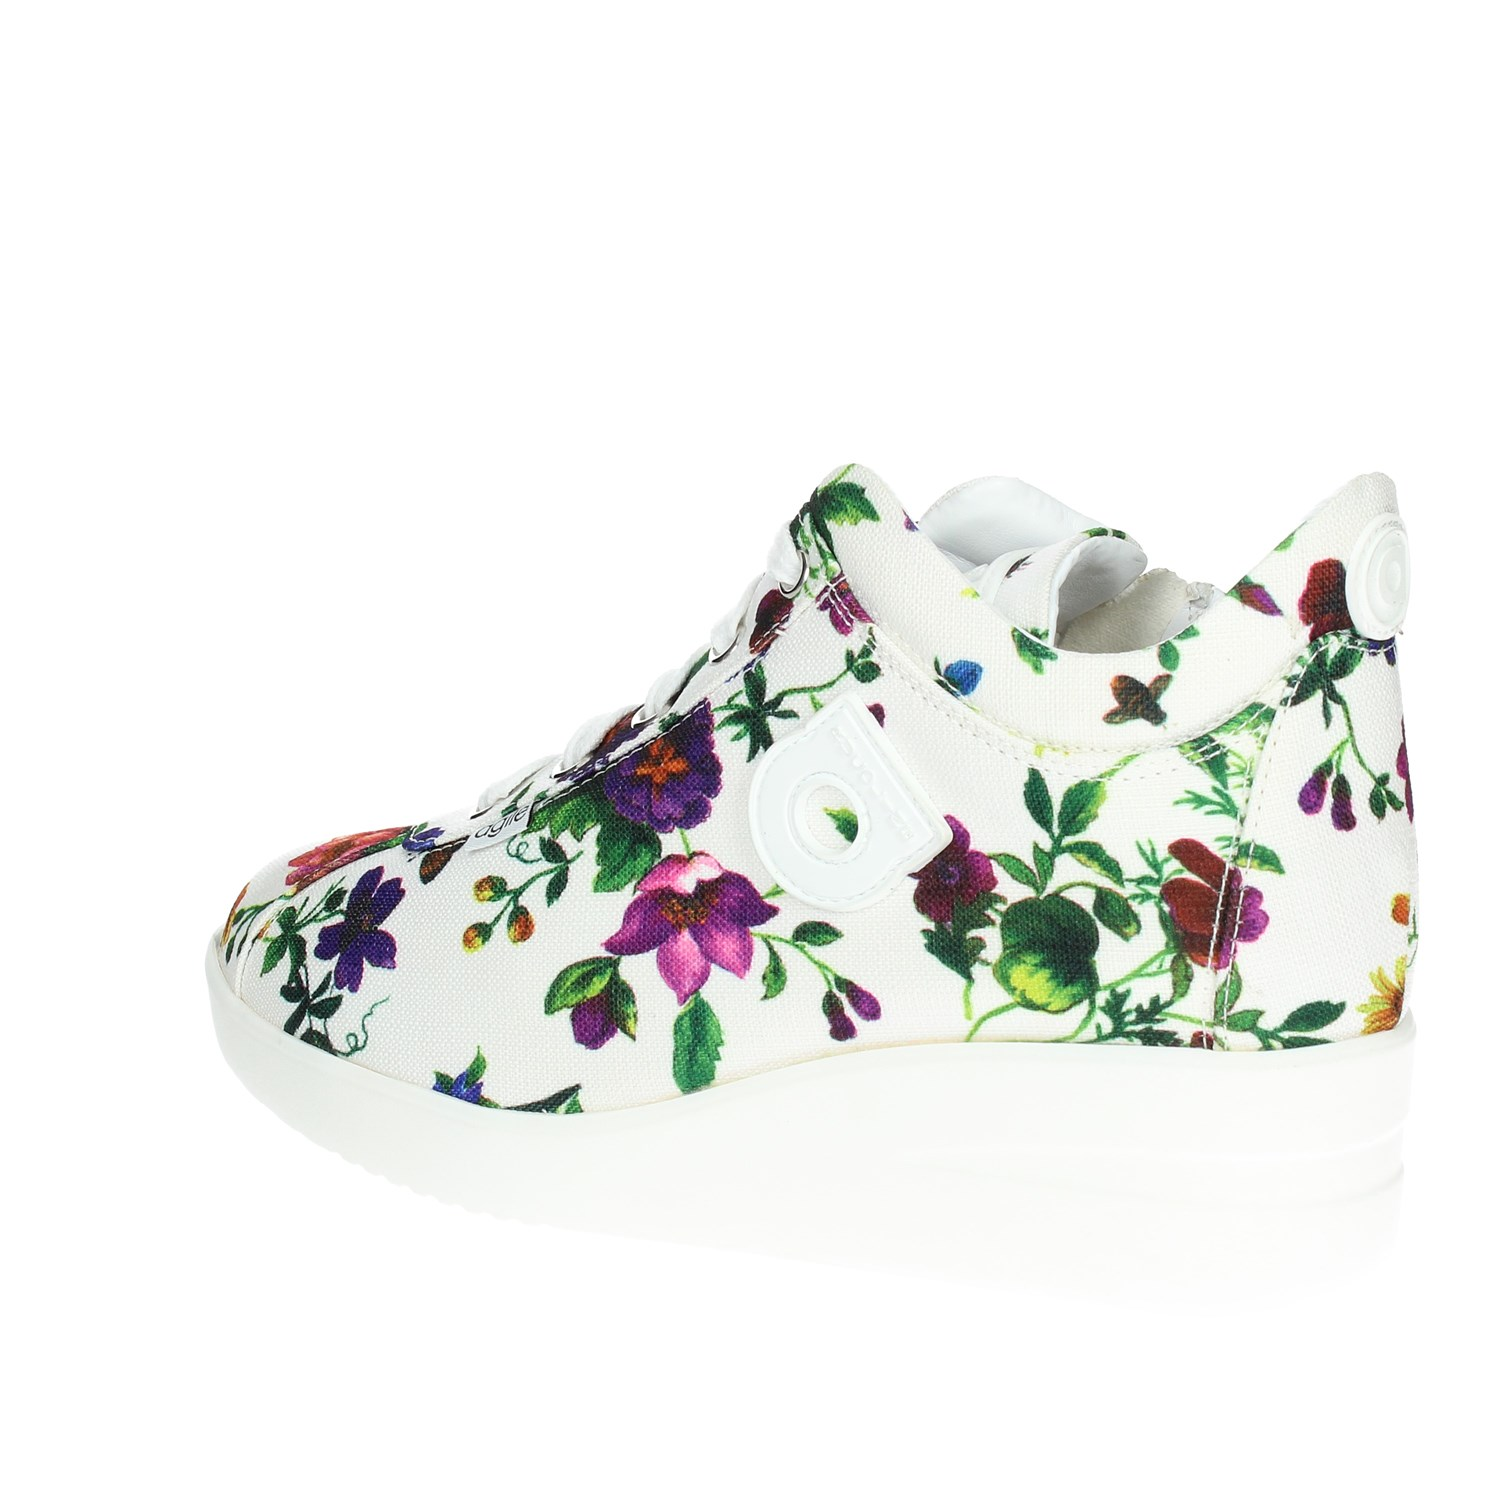 Niedrige Sneakers Rucoline Damen Agile By Rucoline Sneakers  226(A25) Frühjahr/Sommer 582936